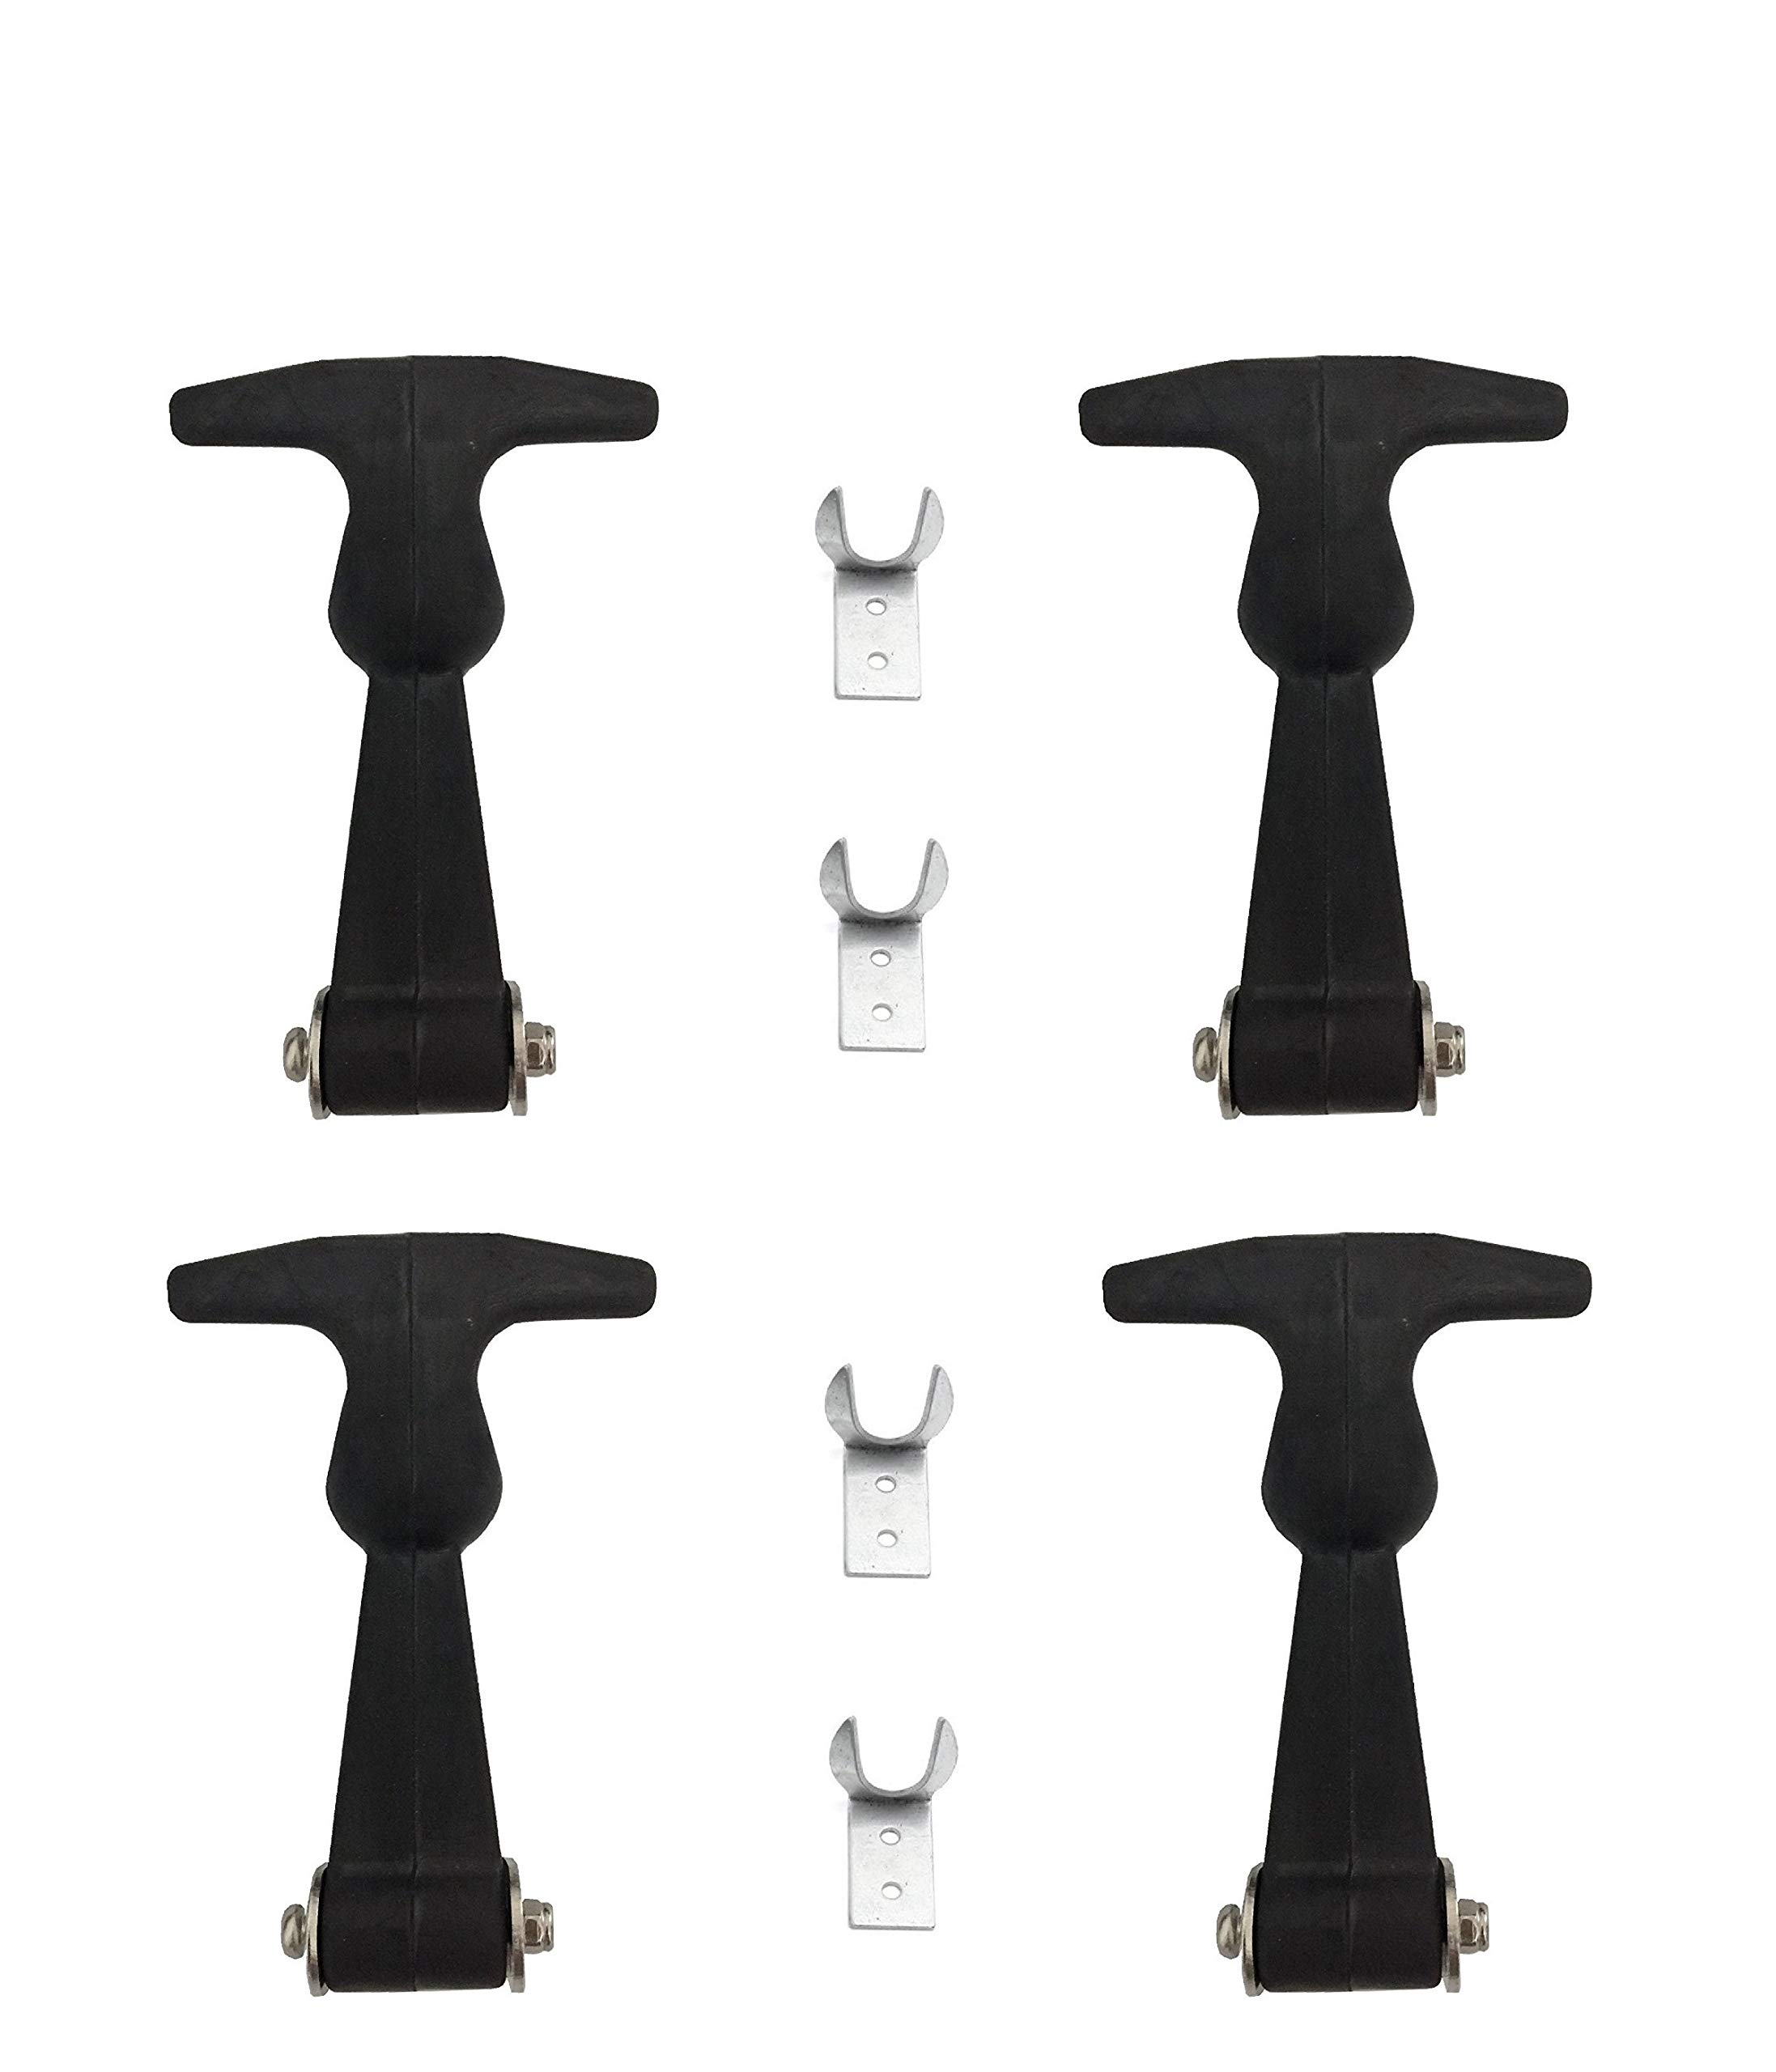 Alwaysuc 4 Packs Elastic Damping hasp - Hasp T-Handle Draw Latches by Alwaysuc